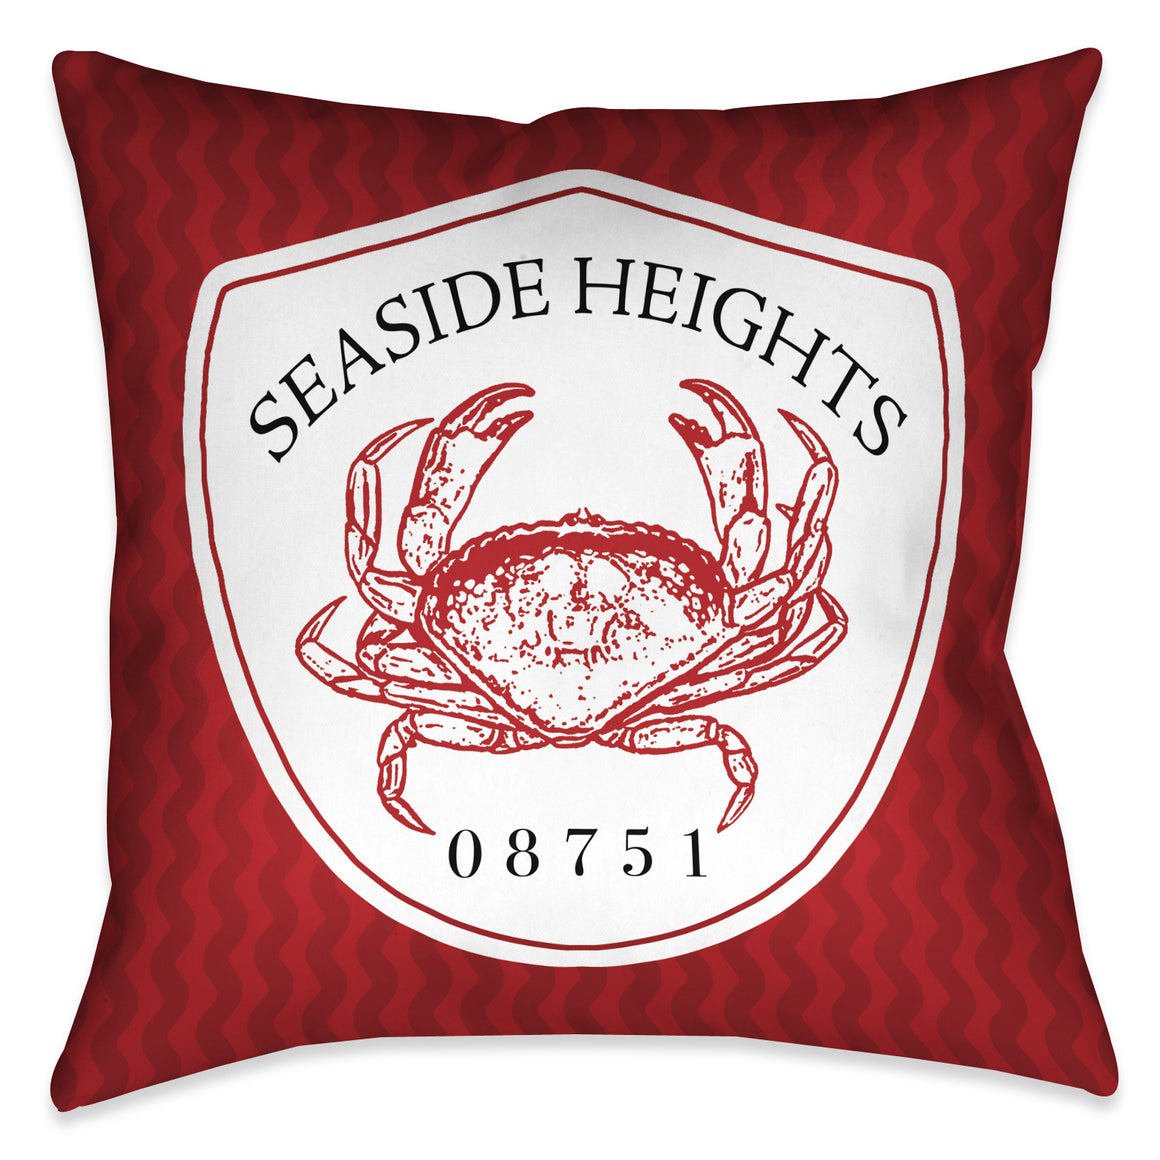 Seaside Heights II Indoor Decorative Pillow